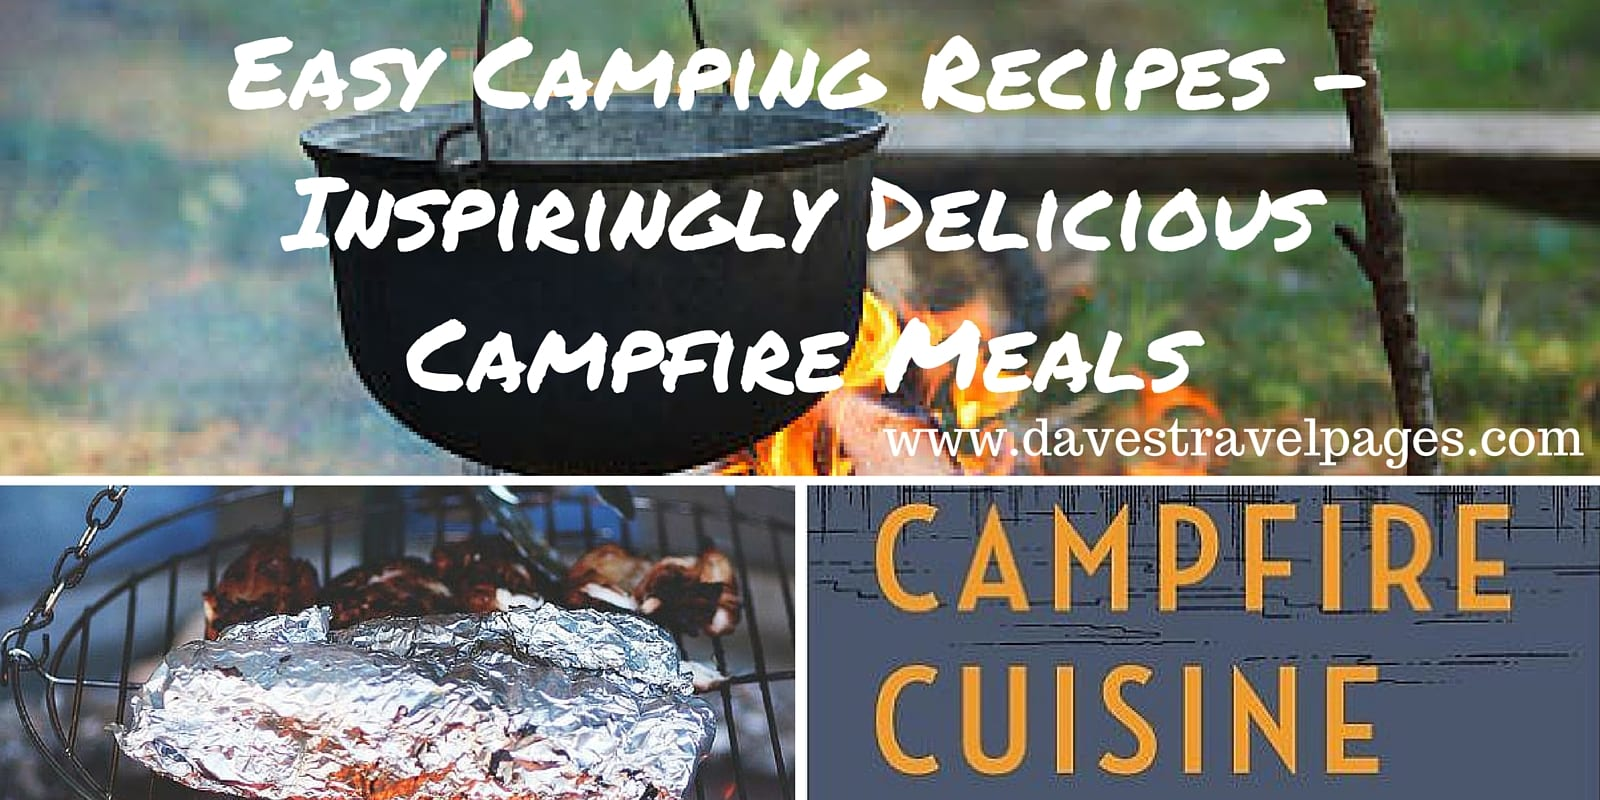 Easy Camping Recipes - Inspiringly delicious campfire meals to try on your next camping trip.